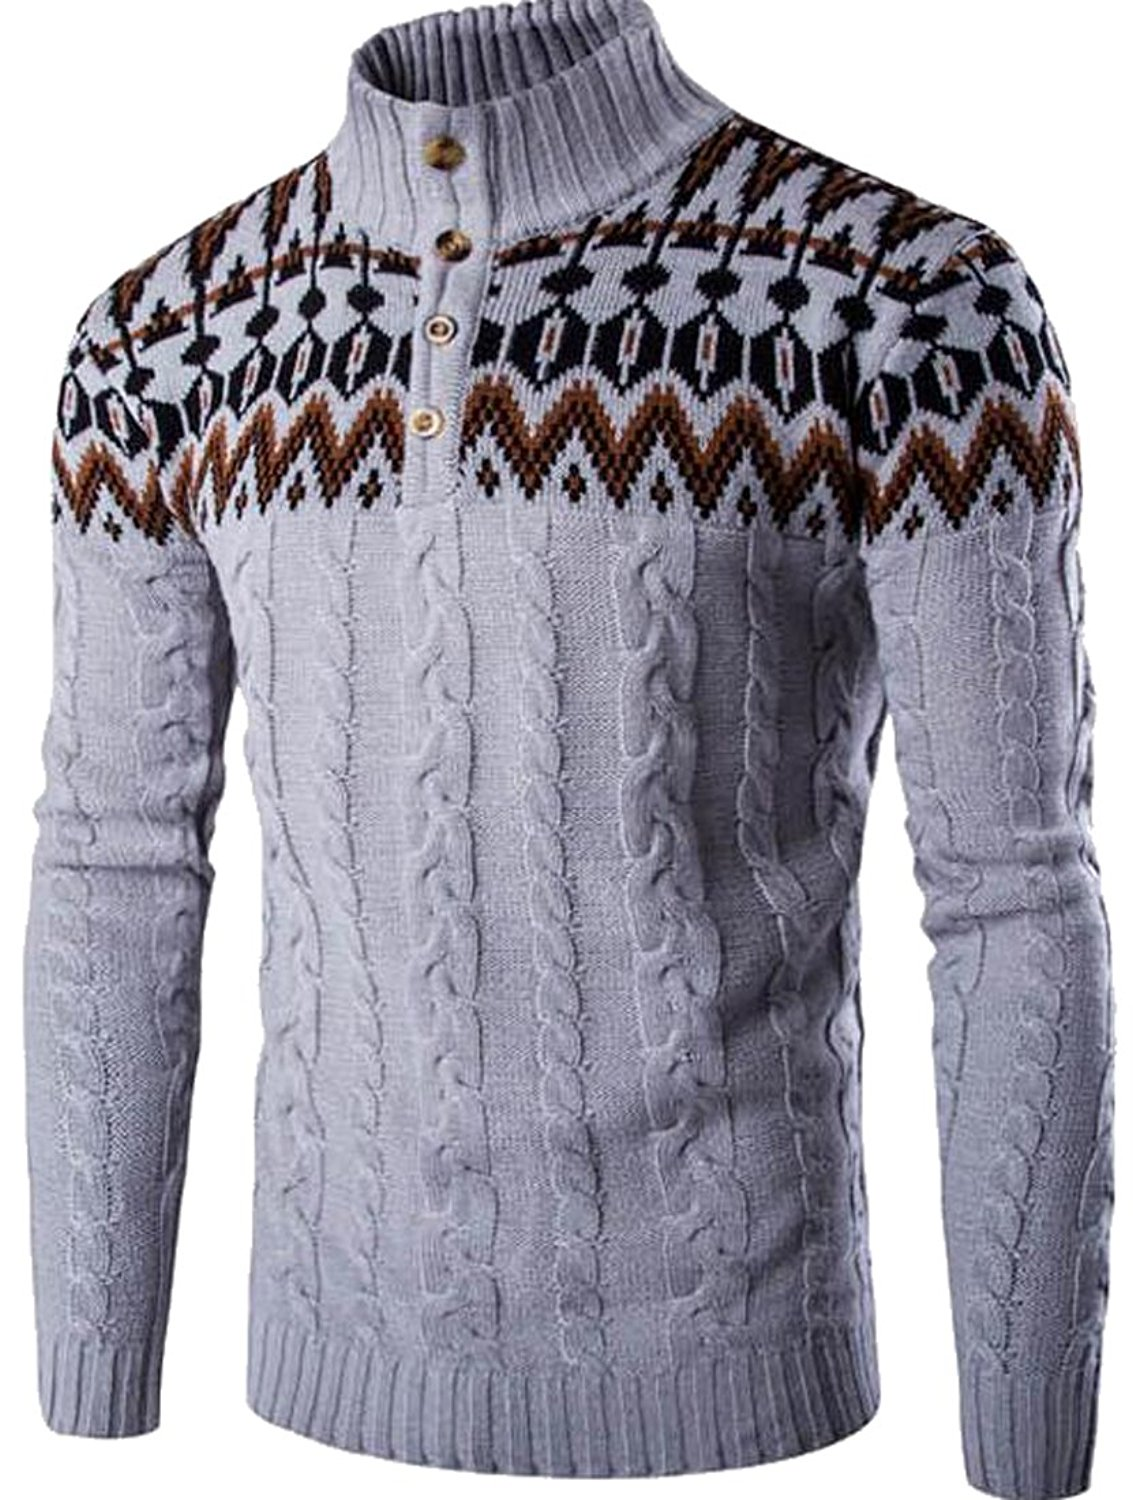 Fensajomon Mens Knit Christmas Printing Round Neck Pullover Sweater Jumper Top